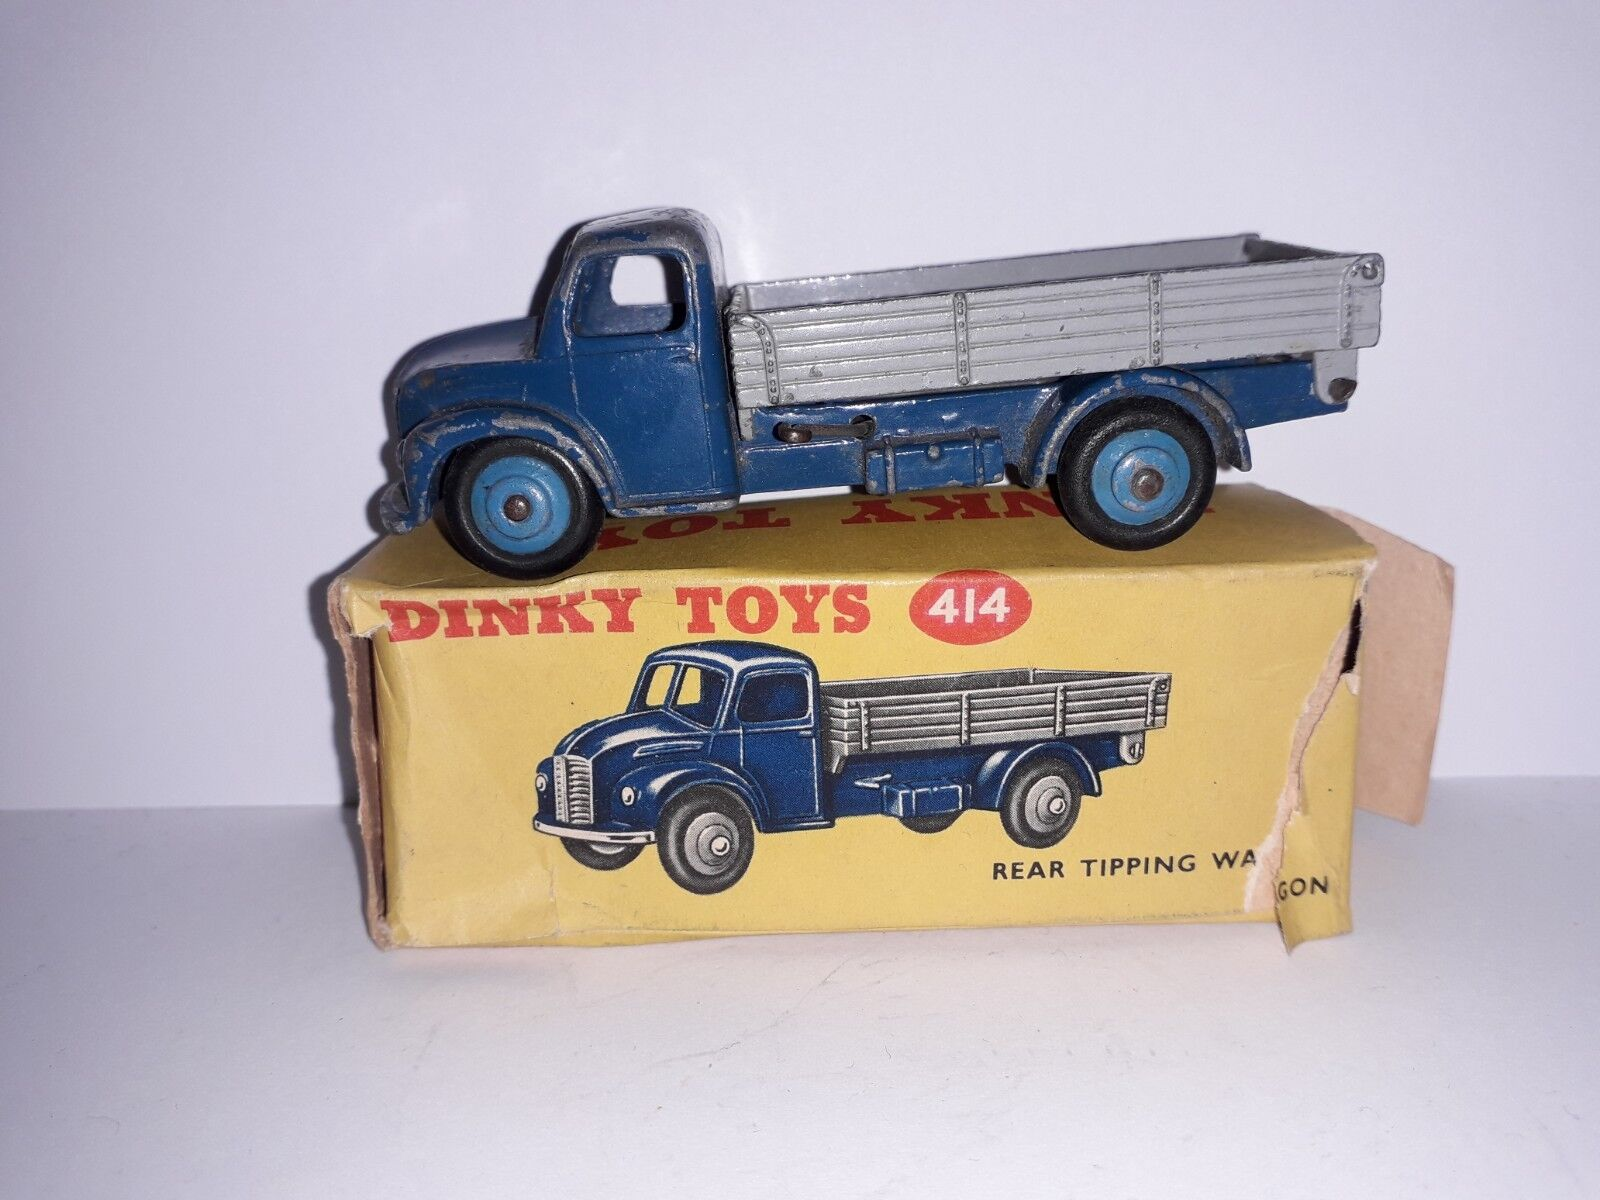 Boxed Dinky Toys 414 Rear Tipping Wagon Dodge bluee Cab with Grey Tipper